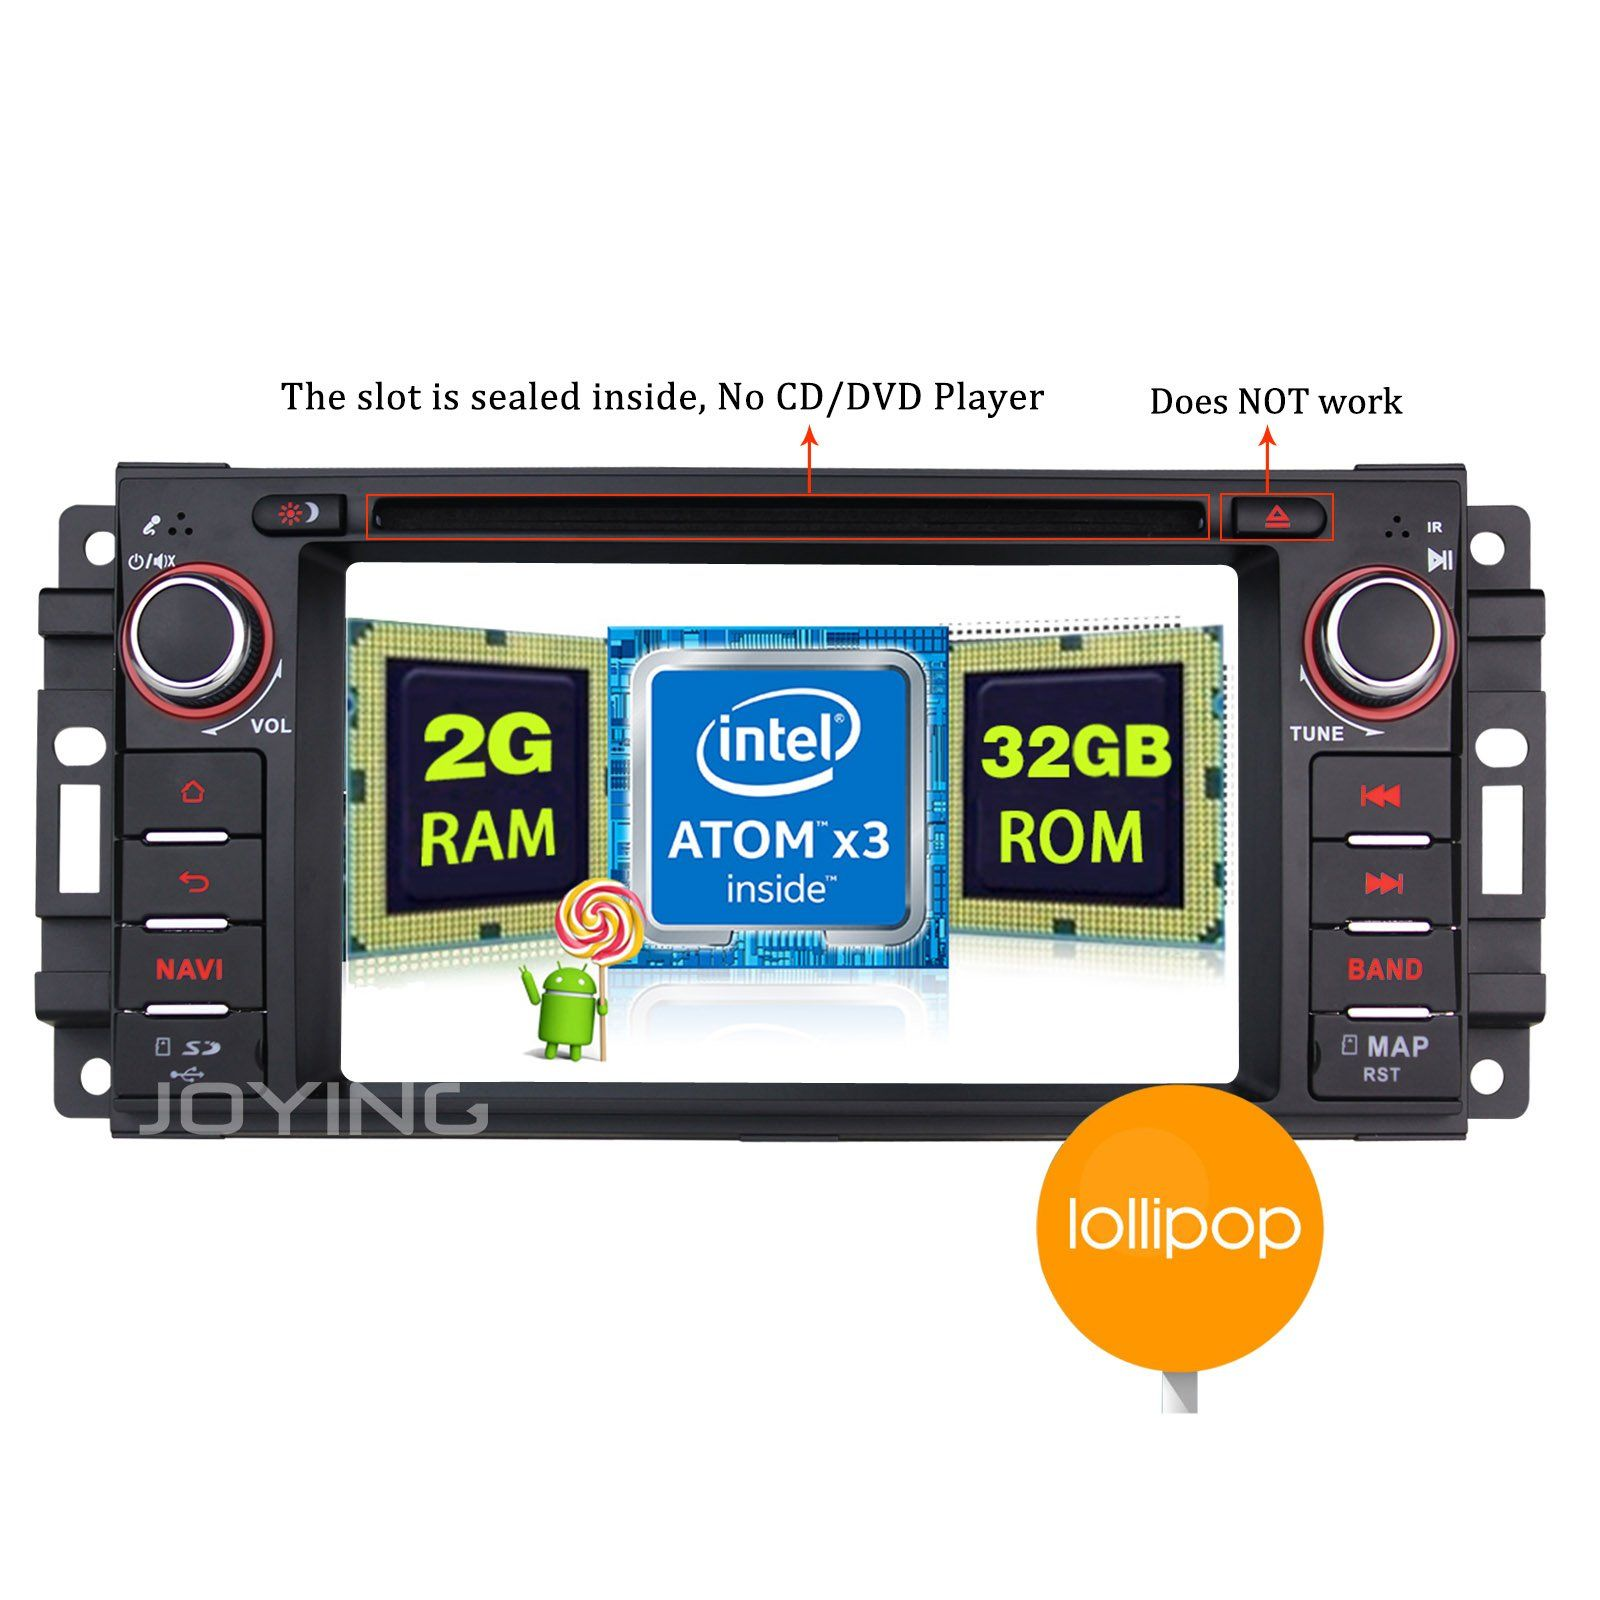 Joying latest android radio 2gb quad core android 5 1 car stereo for jeep wrangler jk dodge